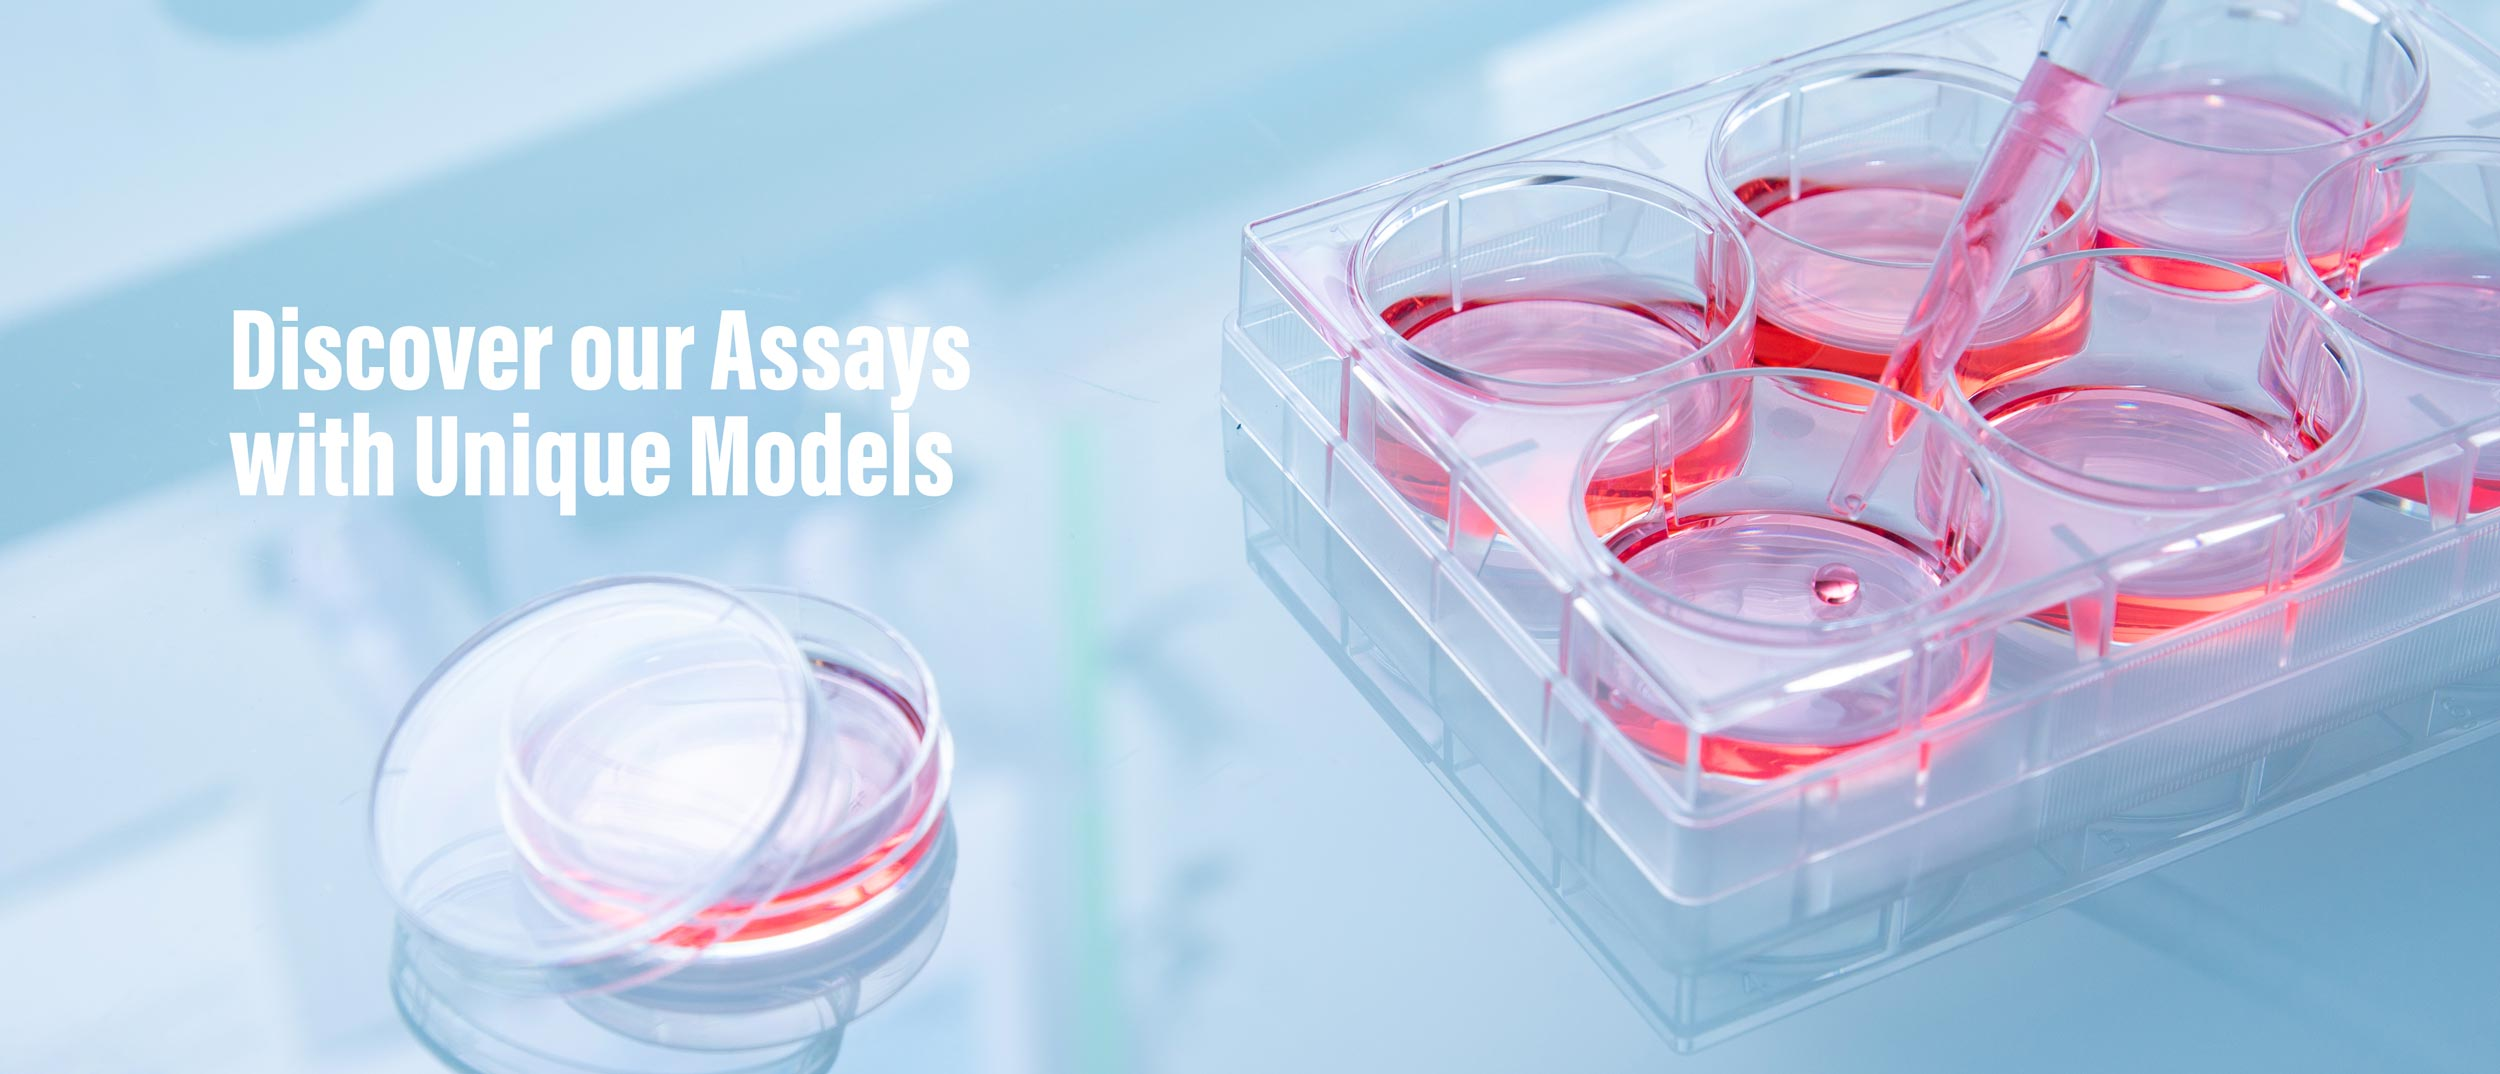 Assays with unique models